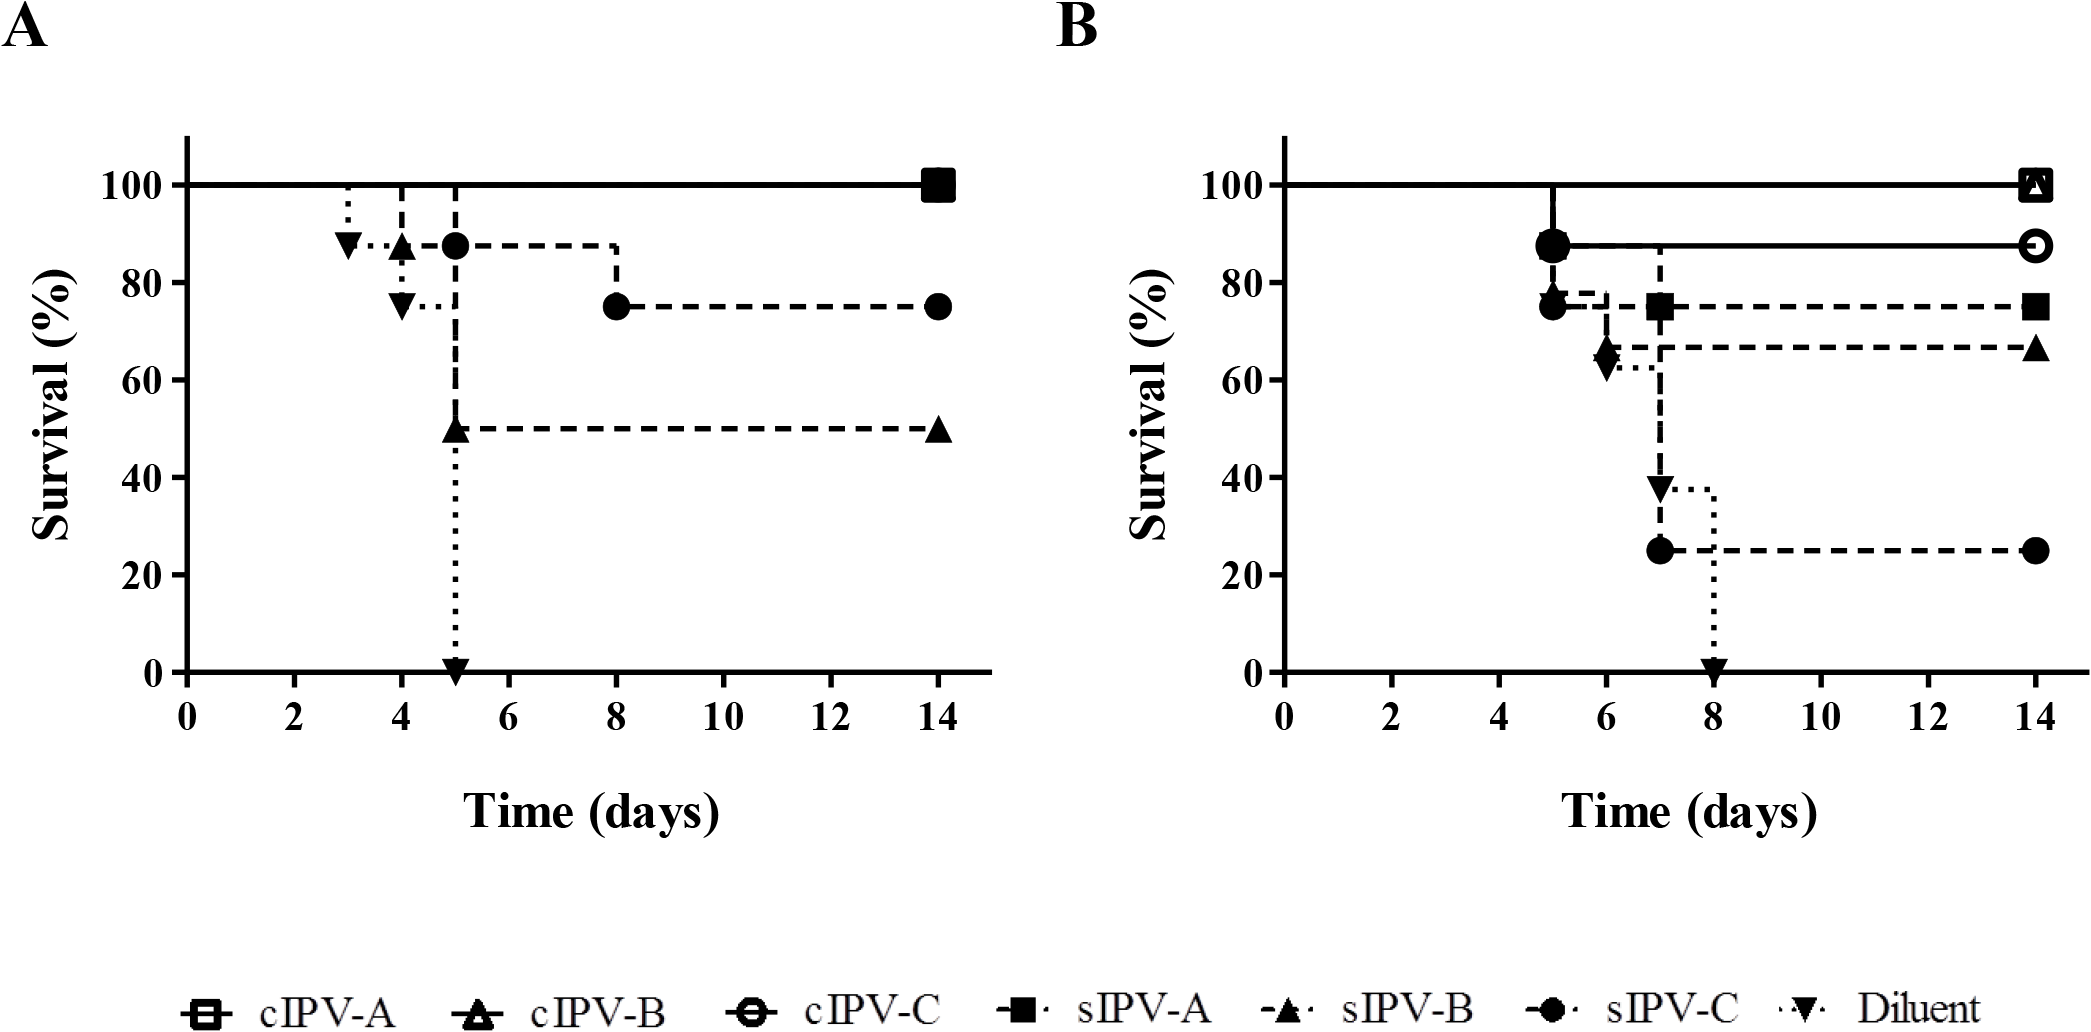 Survival curve analysis of Tg21-bx mice immunised with IPV and challenged with paralytic doses of poliovirus.